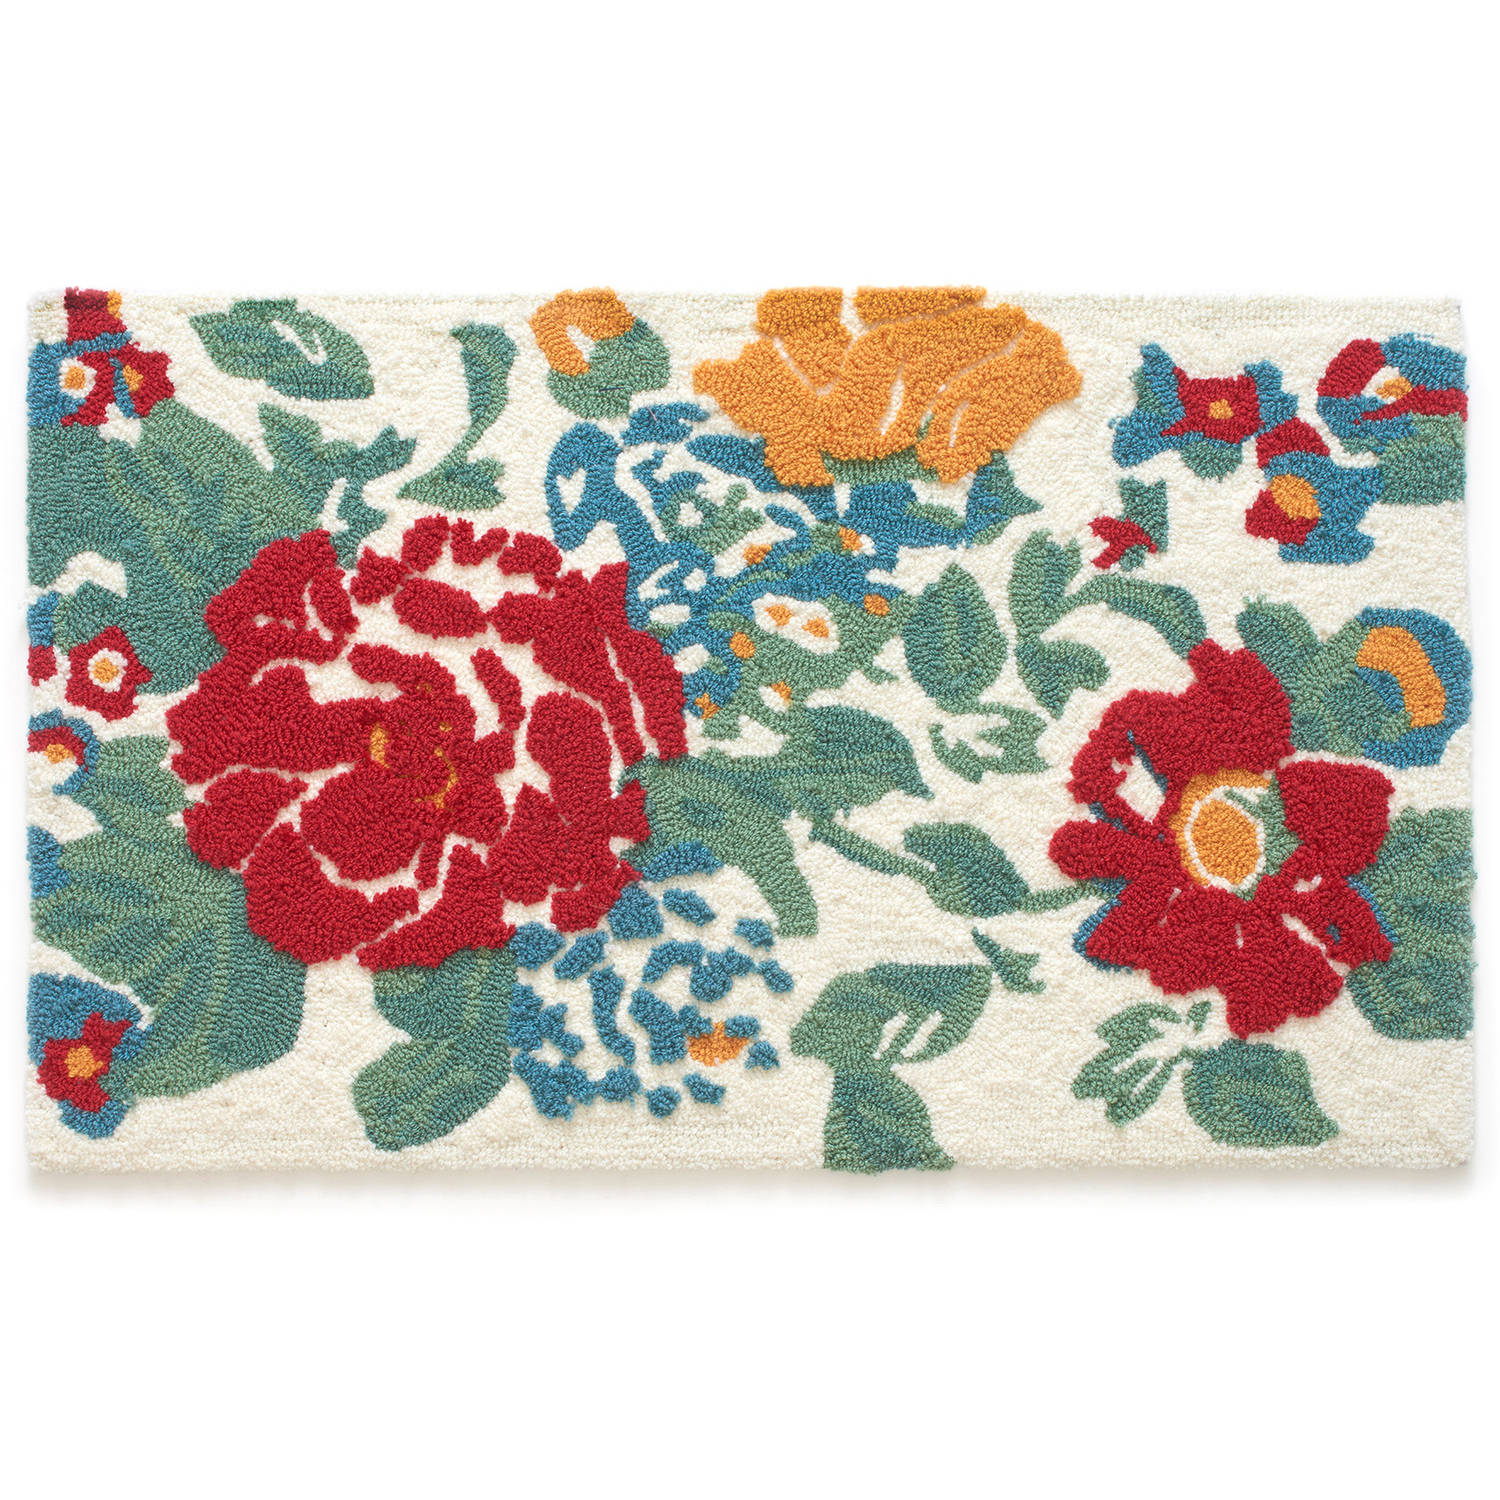 The Pioneer Woman Country Garden Rug